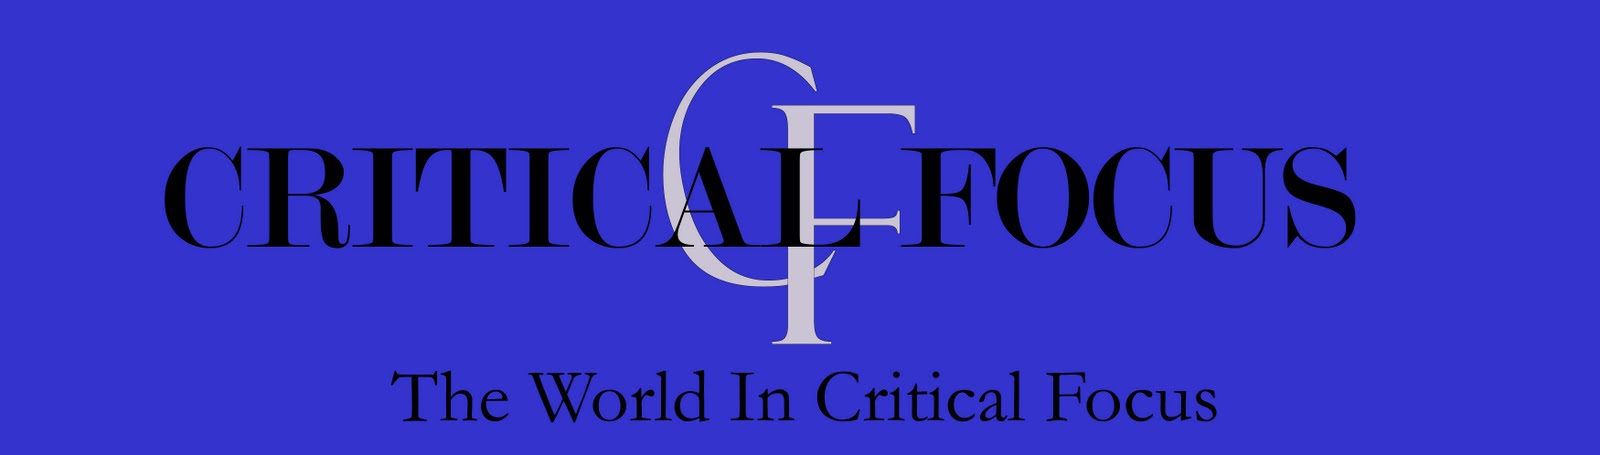 The World In Critical Focus